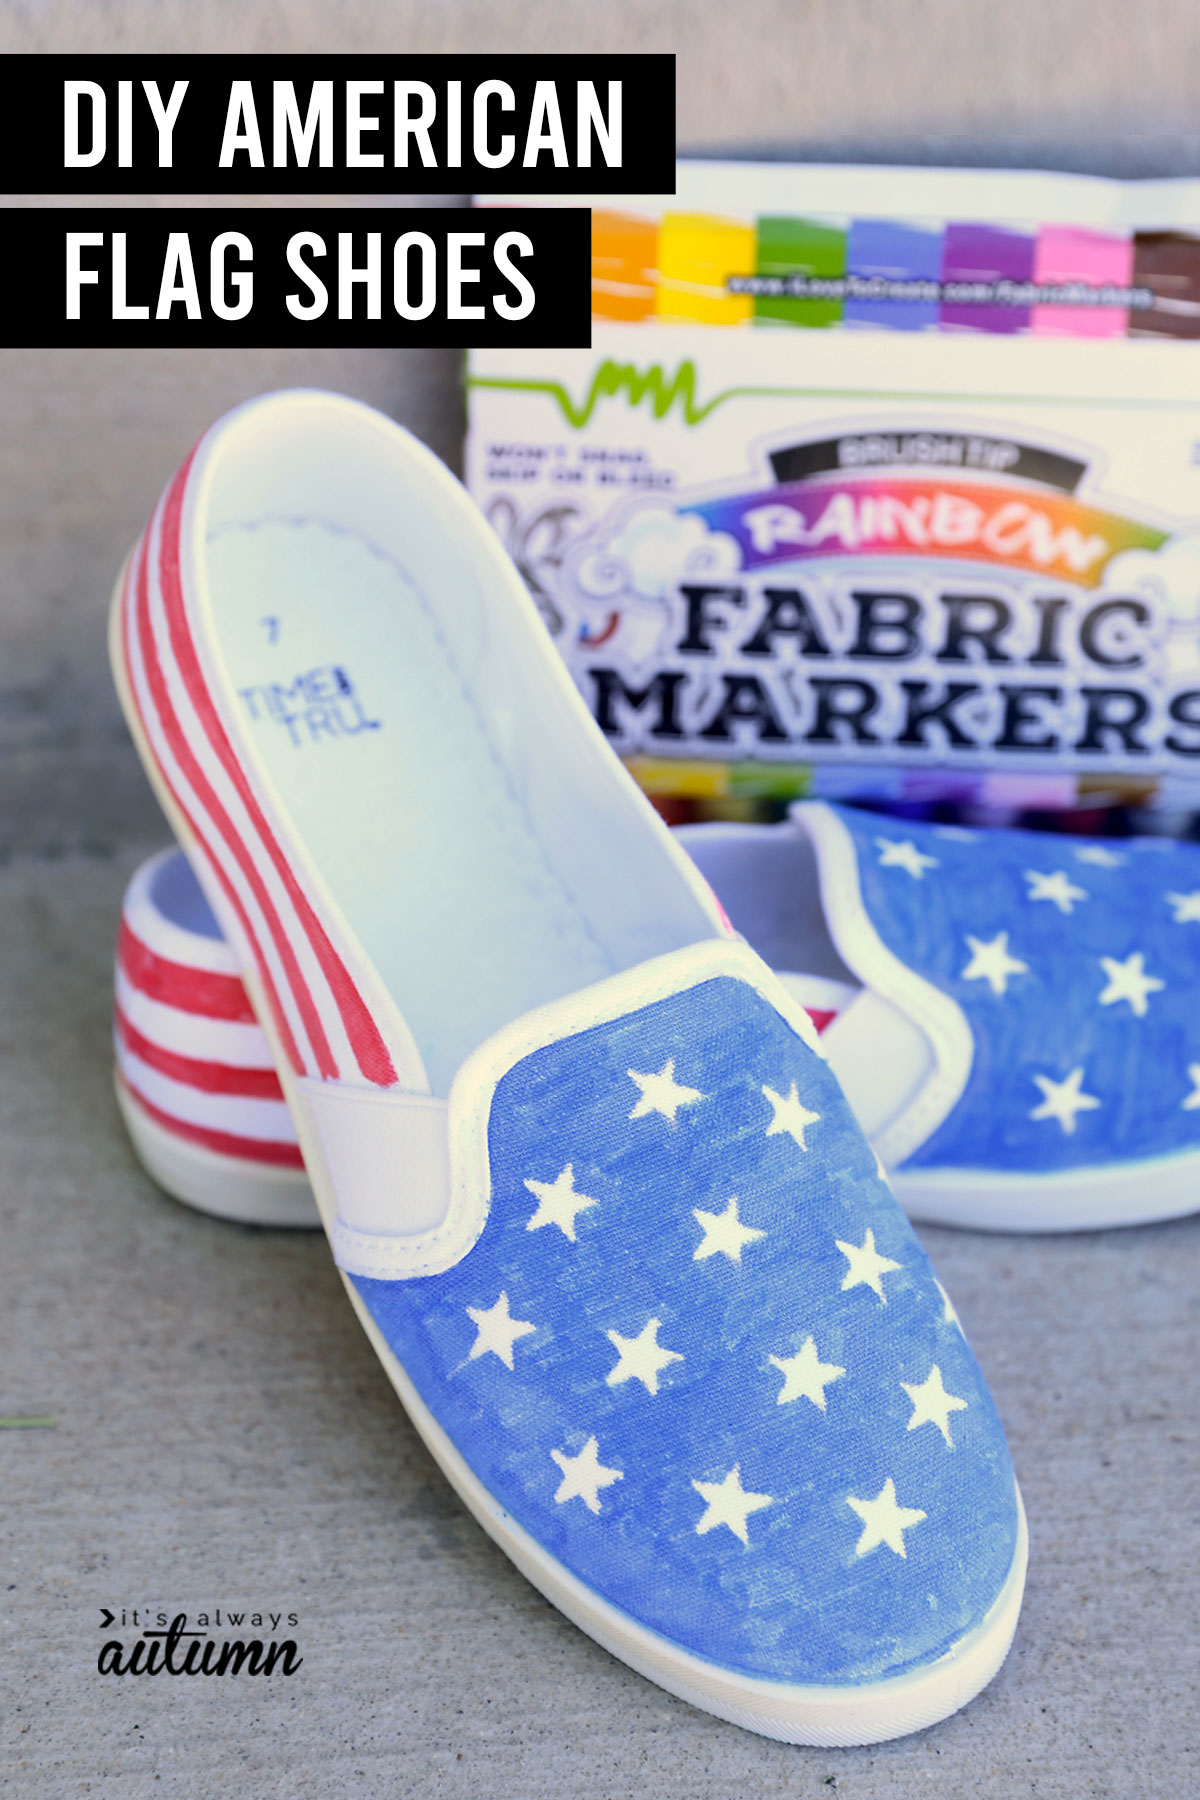 DIY American Flag Shoes with fabric markers